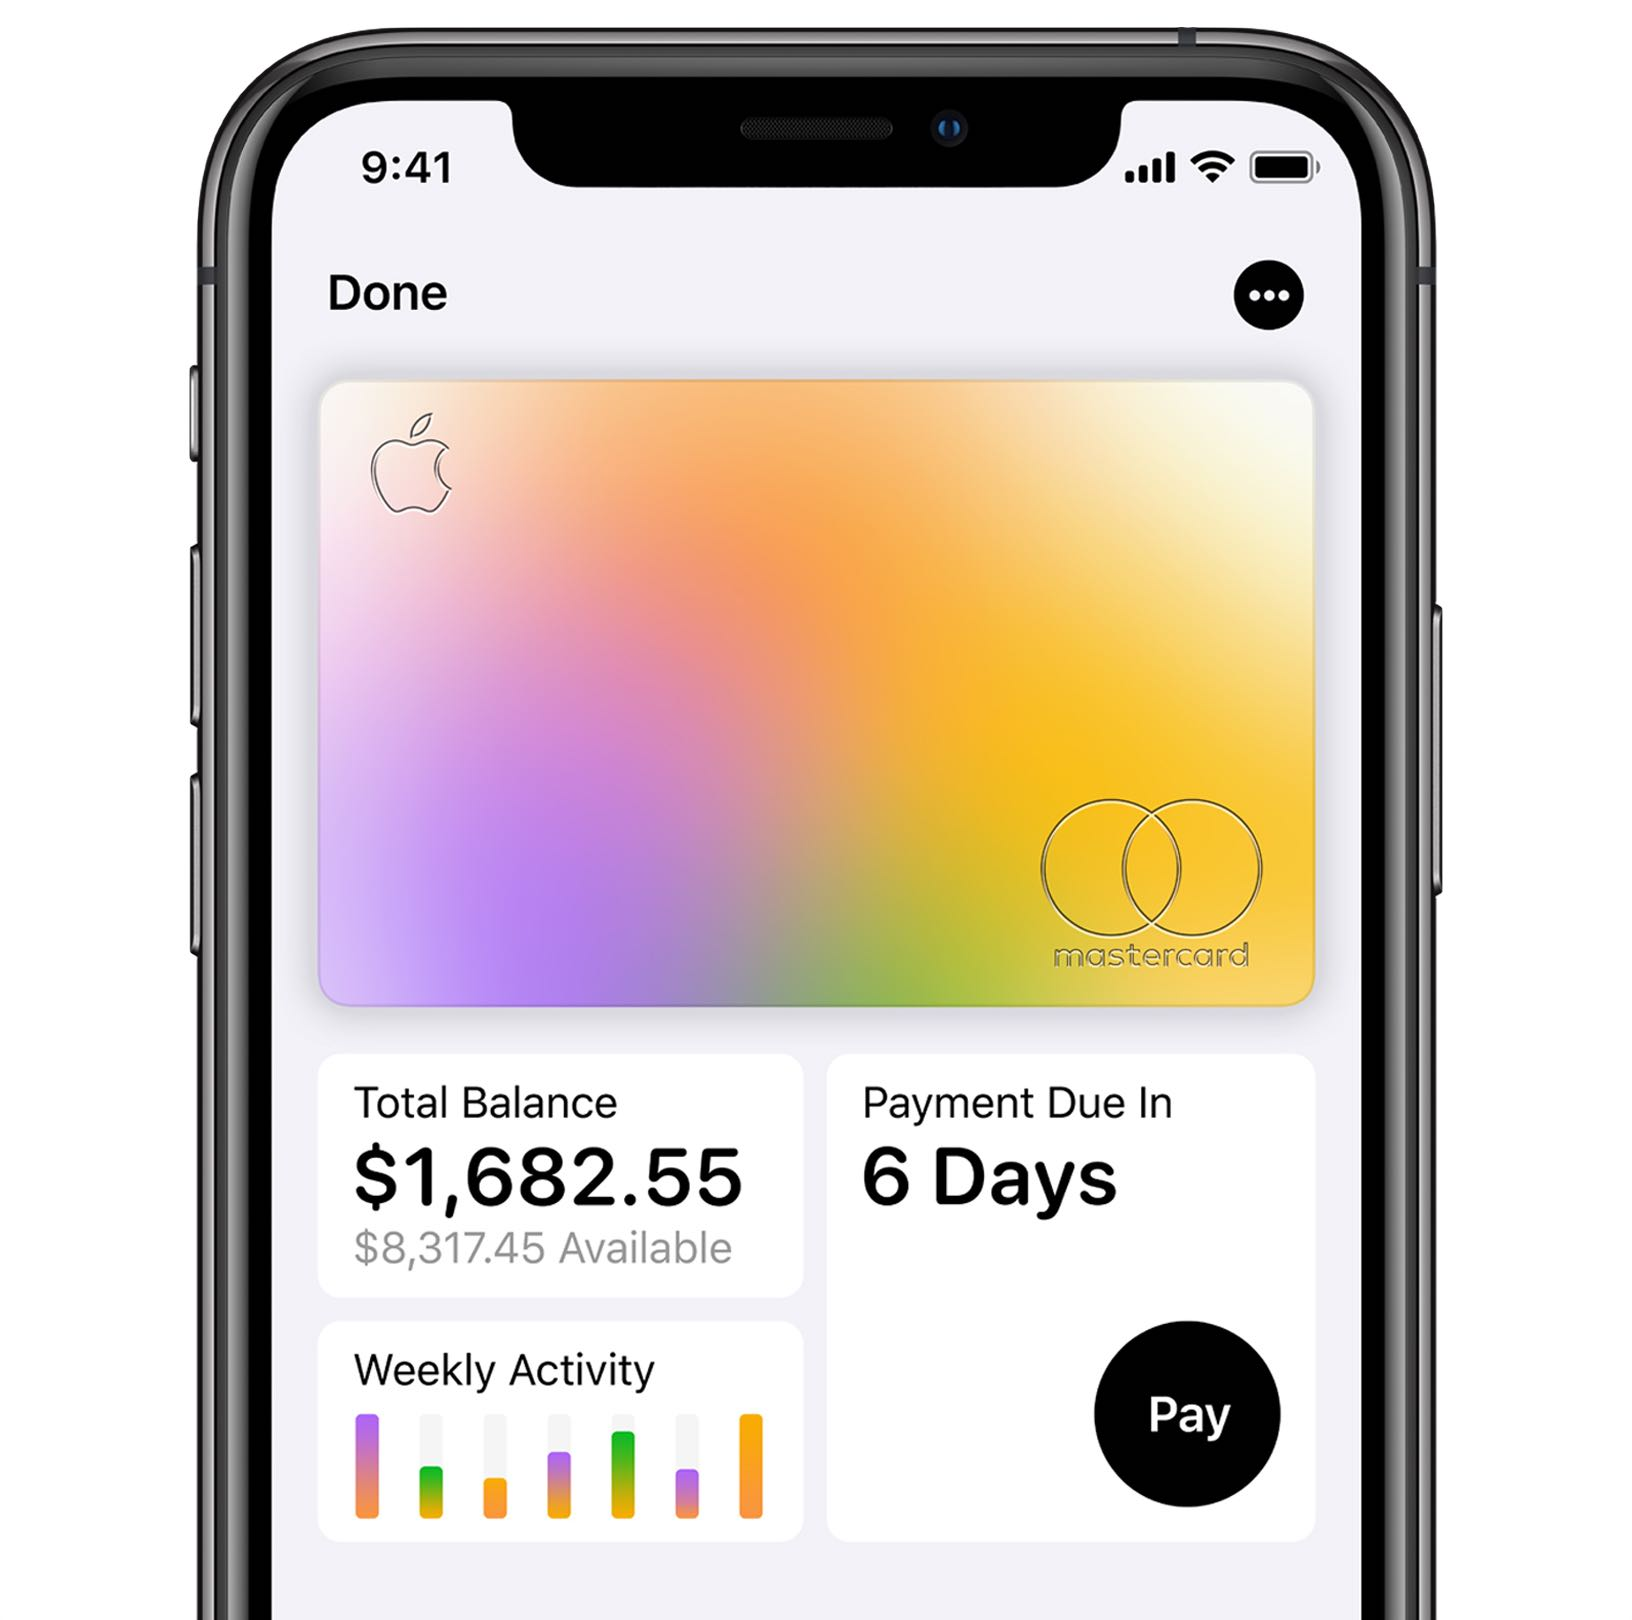 Apple Card will let you generate virtual card numbers for